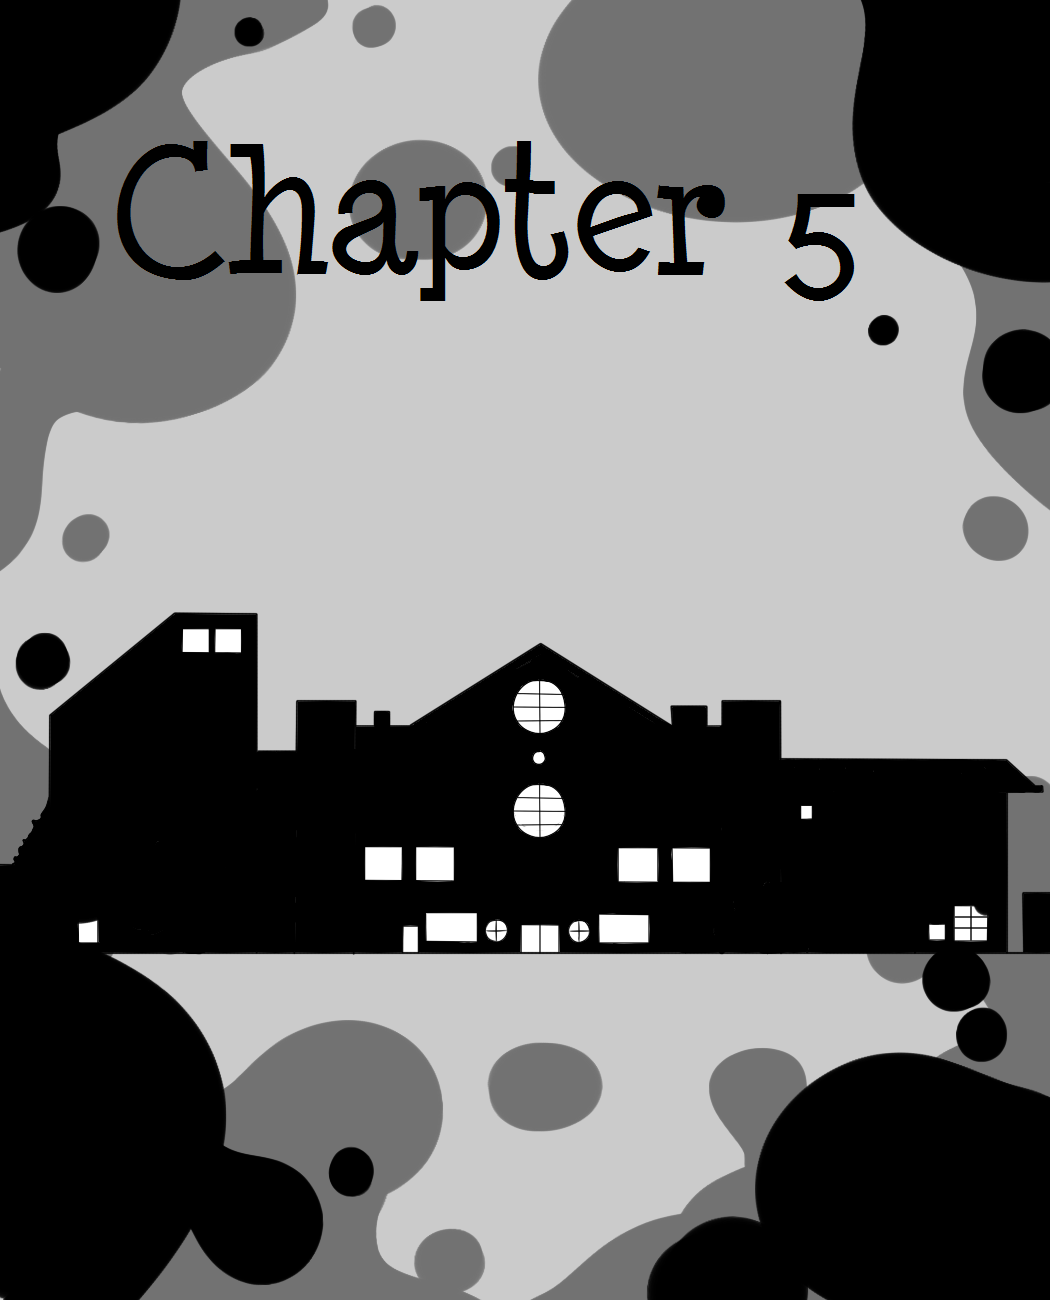 Chapter 5: The Surprising Tragedy of Gentle May Therapy Center